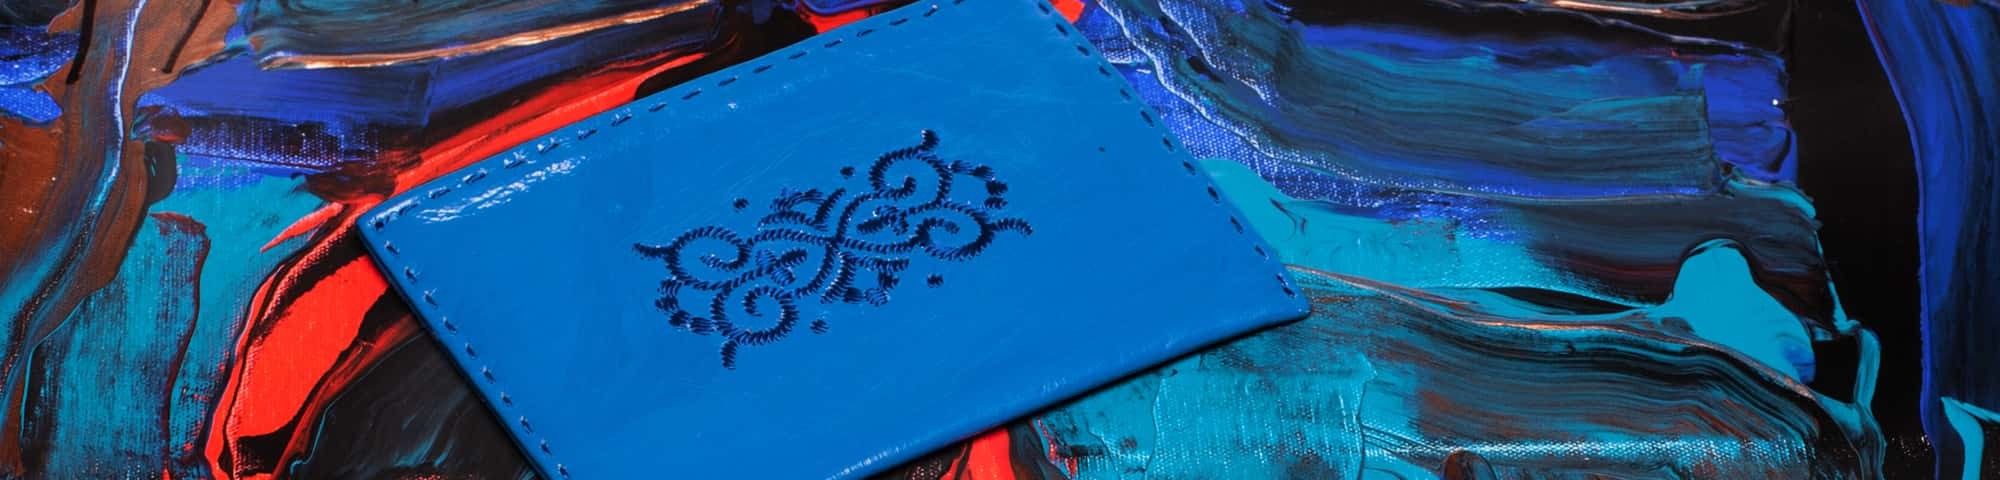 blue embroidered leather pouch by ABURY